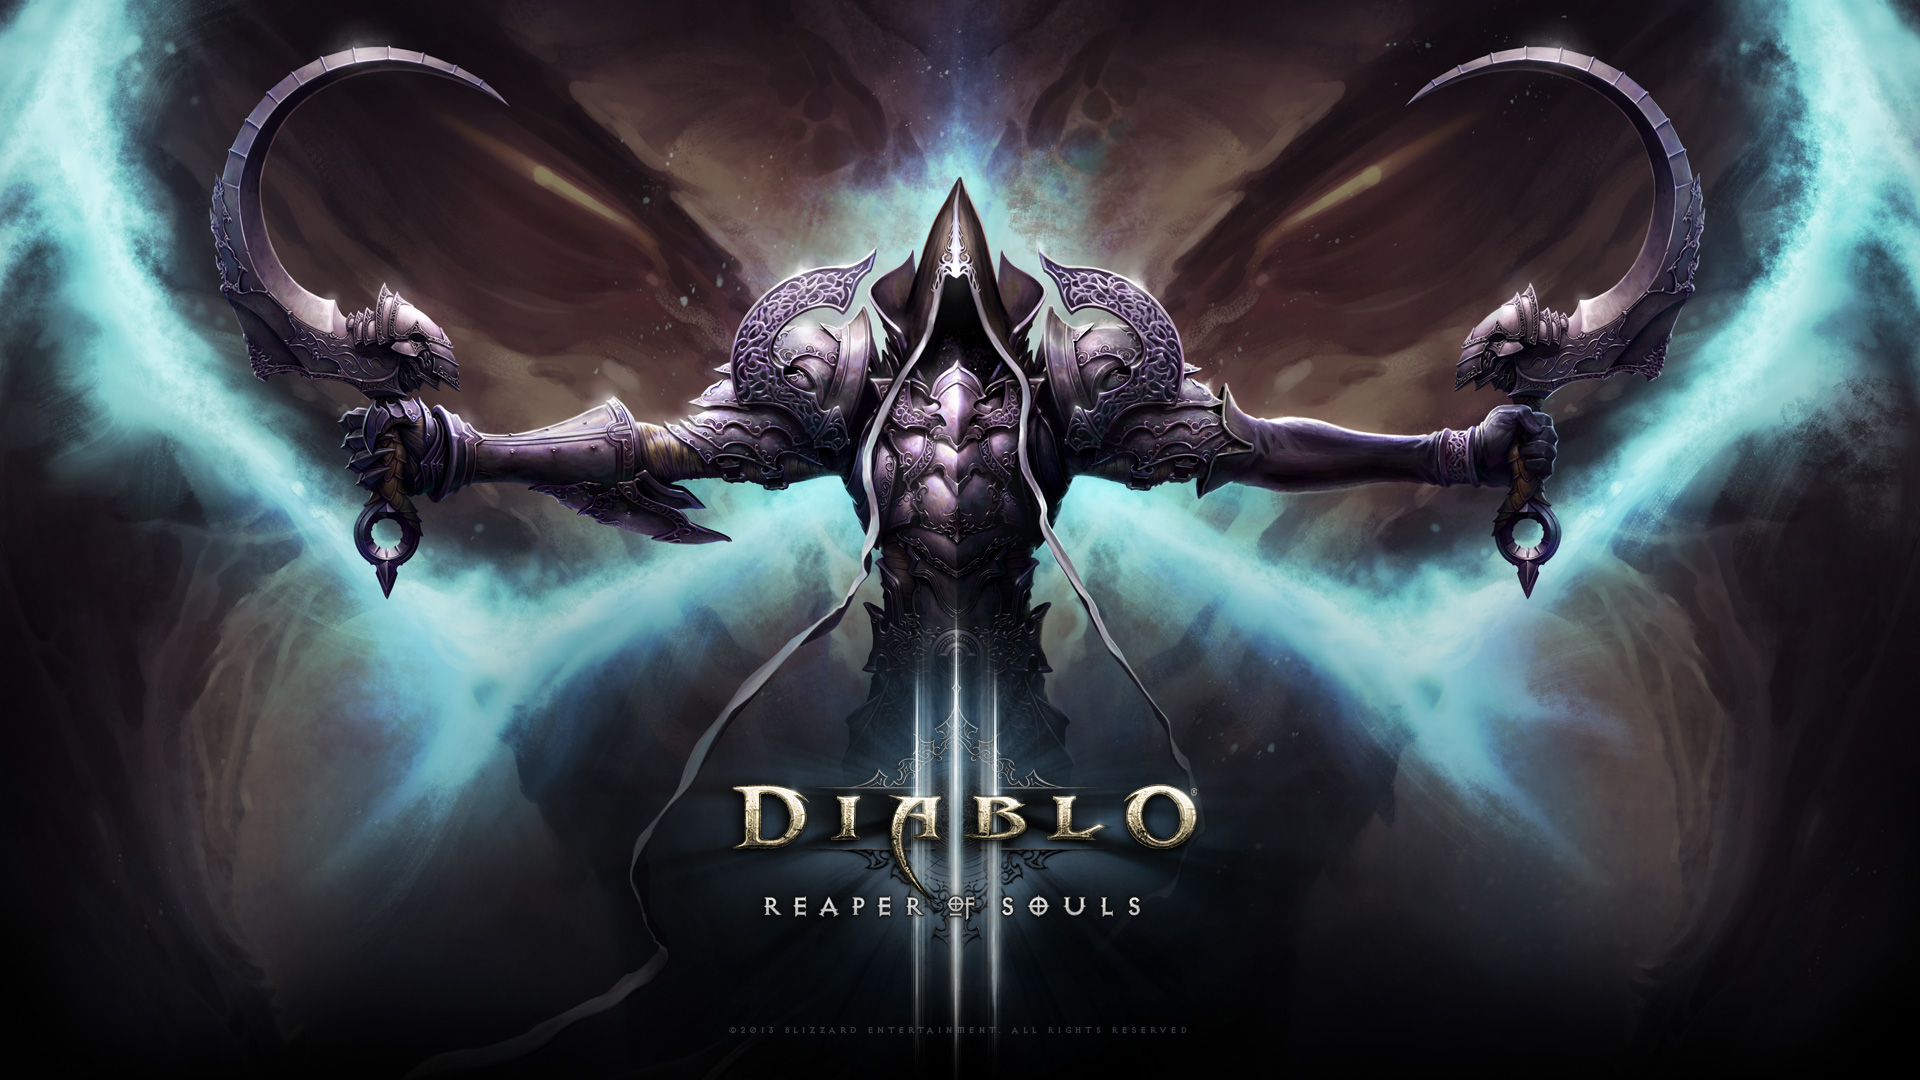 HD wallpaper Diablo  Name Text Font Background HD Wallpaper 1920x1080